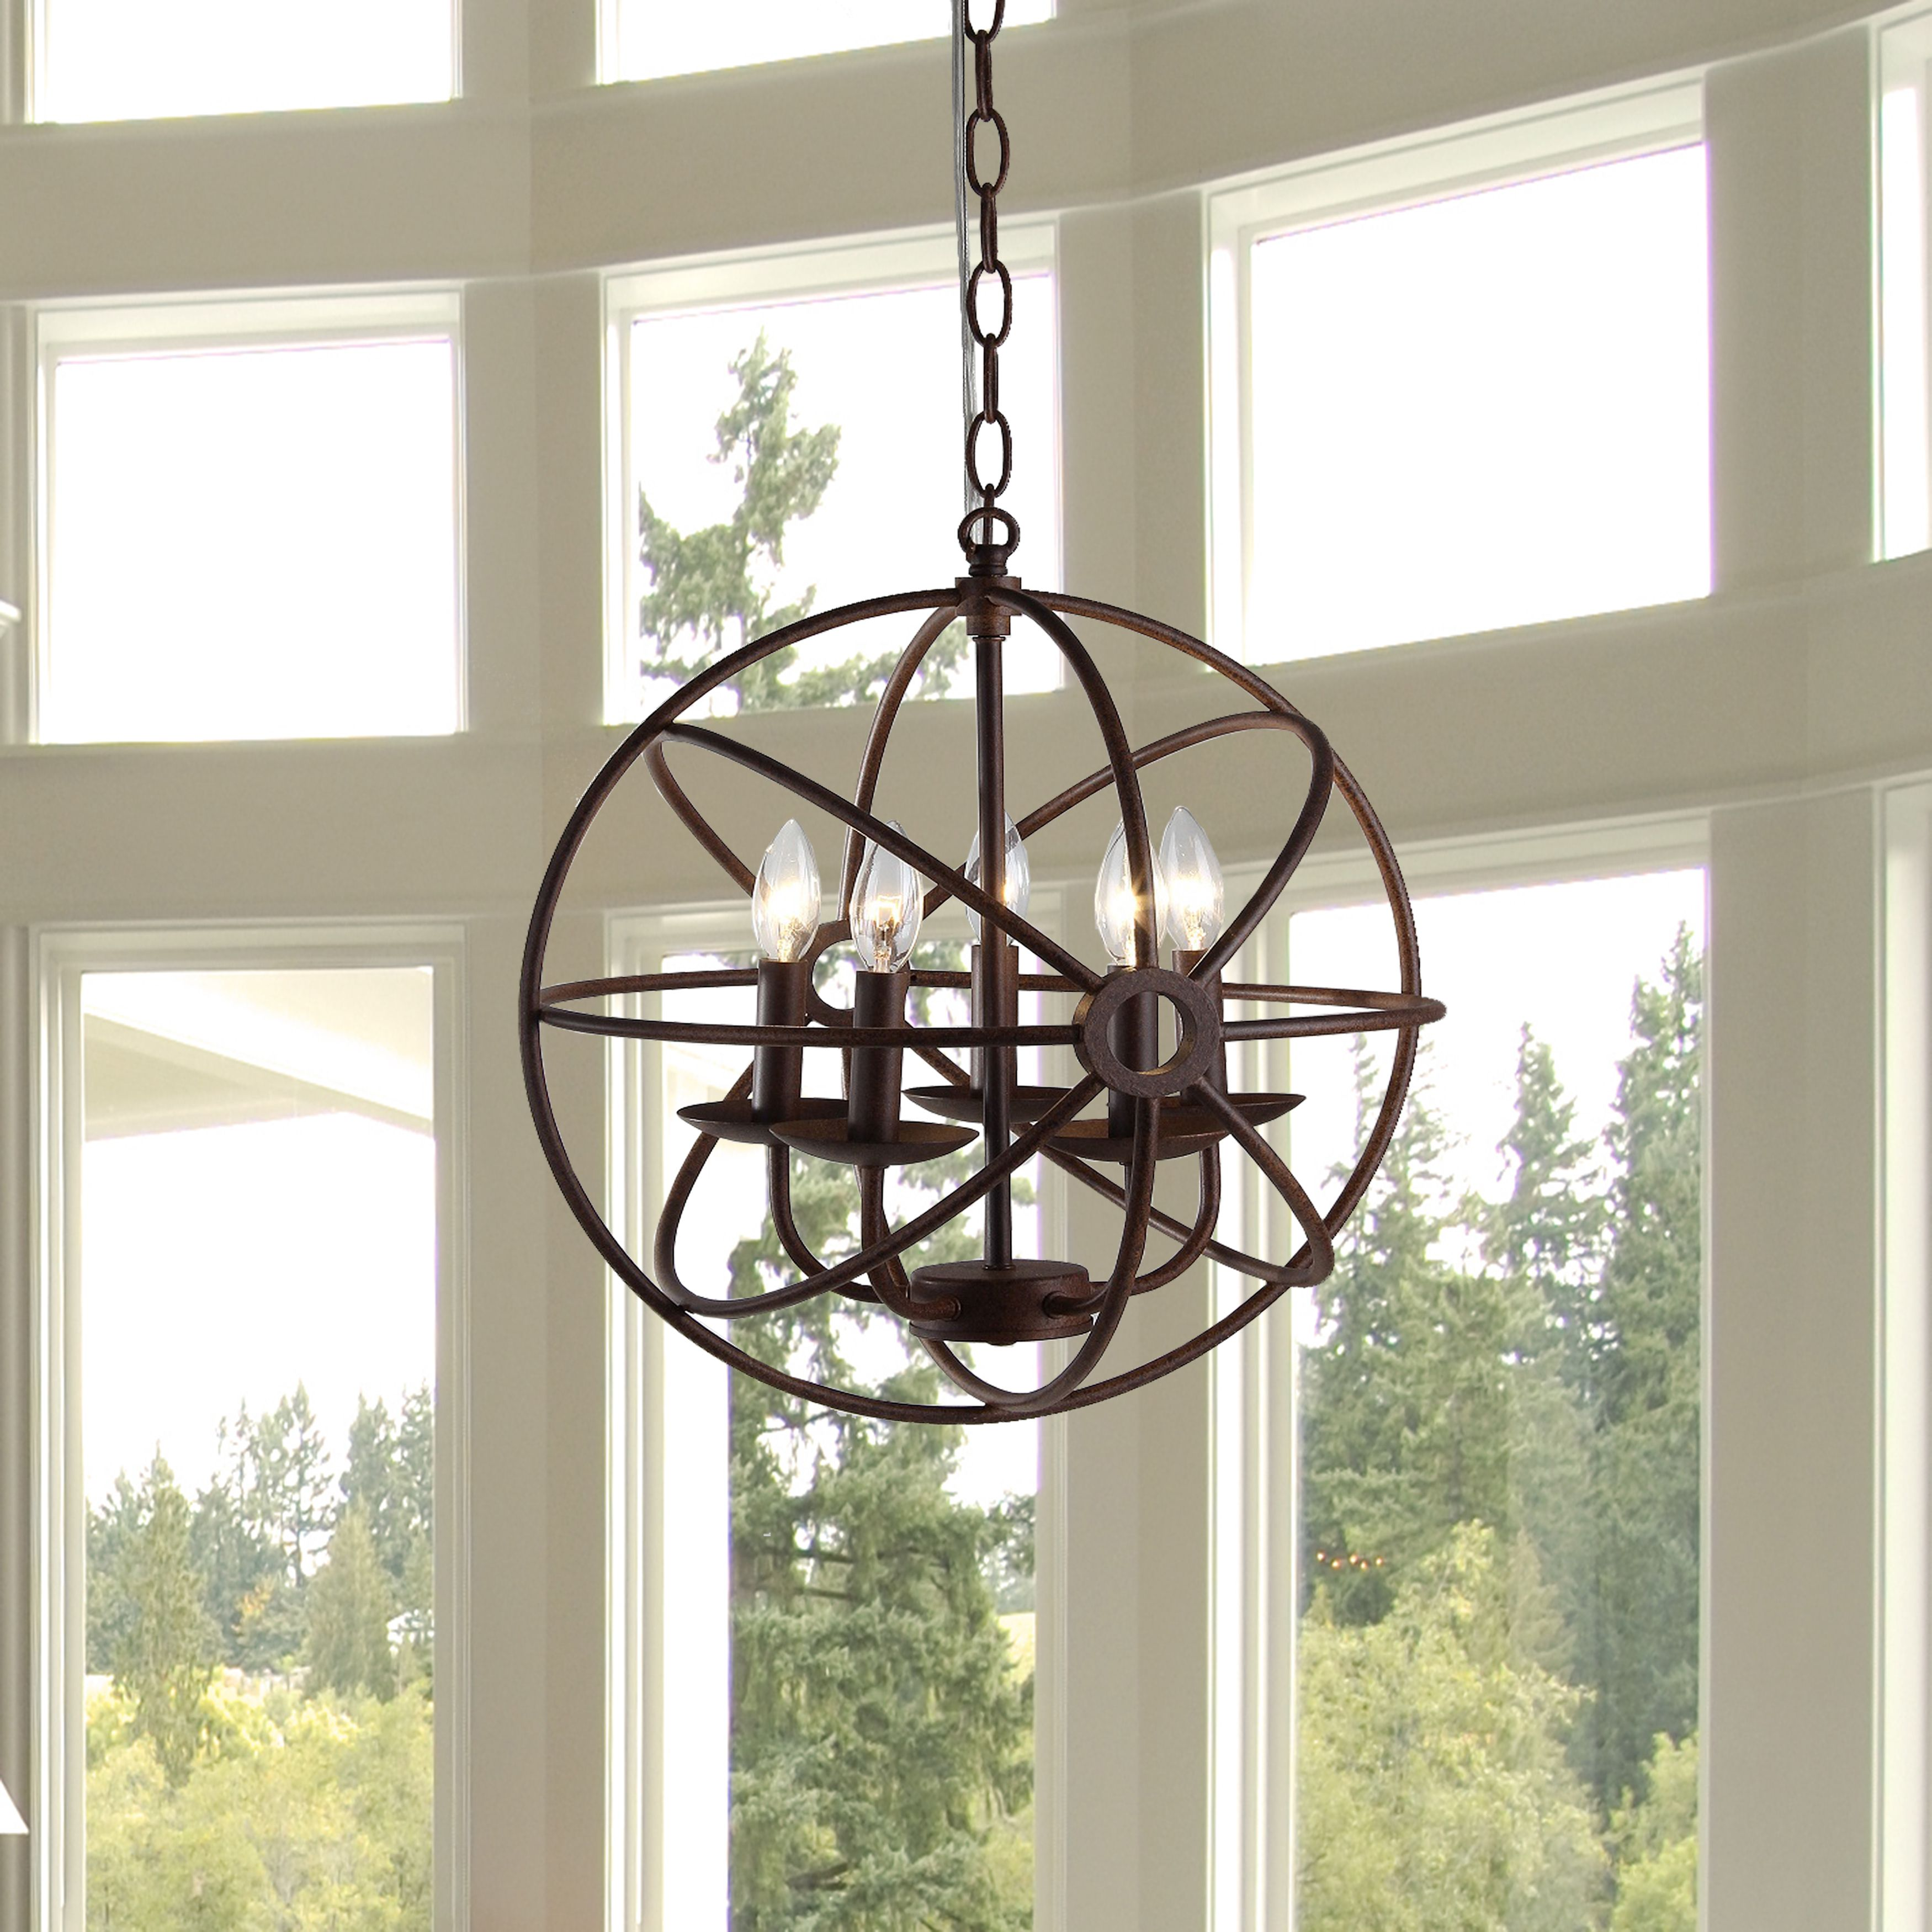 It is beautifully put together for an amazing and stylish illumination experience. This cage-like chandelier is 17 inches diameter and about 40 inches high.